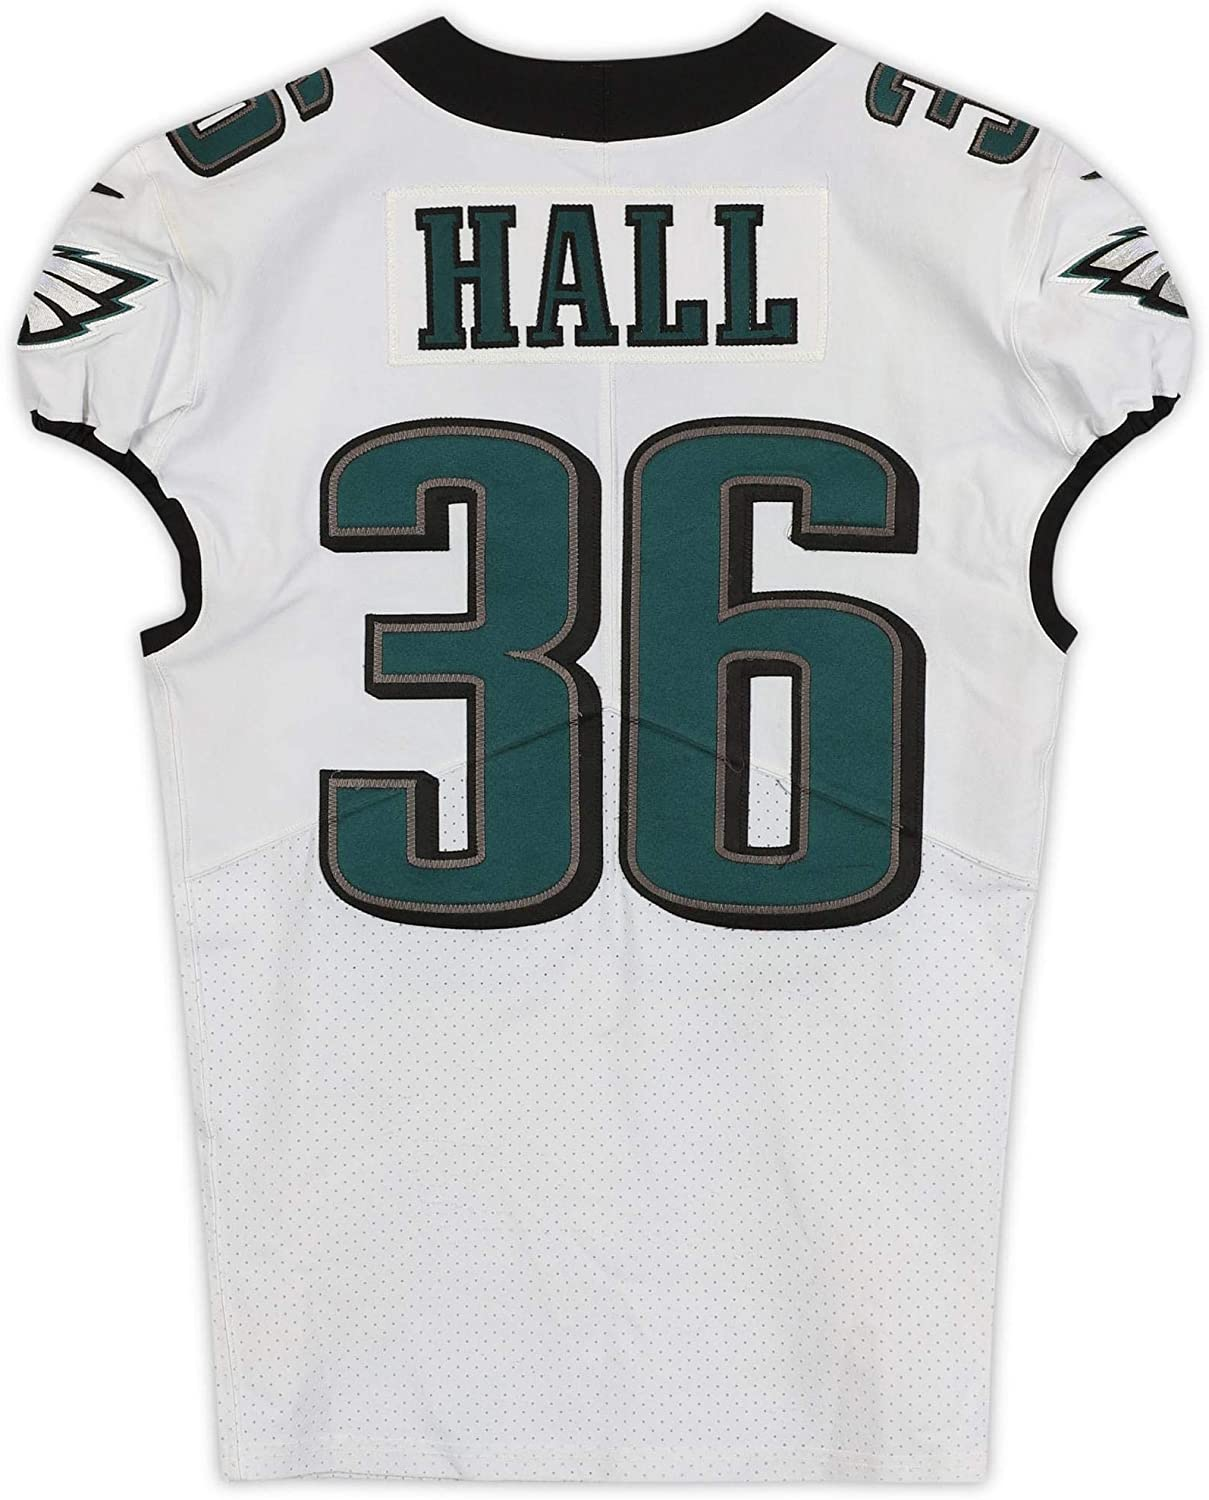 Deiondre Hall Philadelphia Eagles Game-Used #36 White Jersey from the 2019-20 NFL Season - Size 40+4 - Unsigned NFL Game Used Jerseys